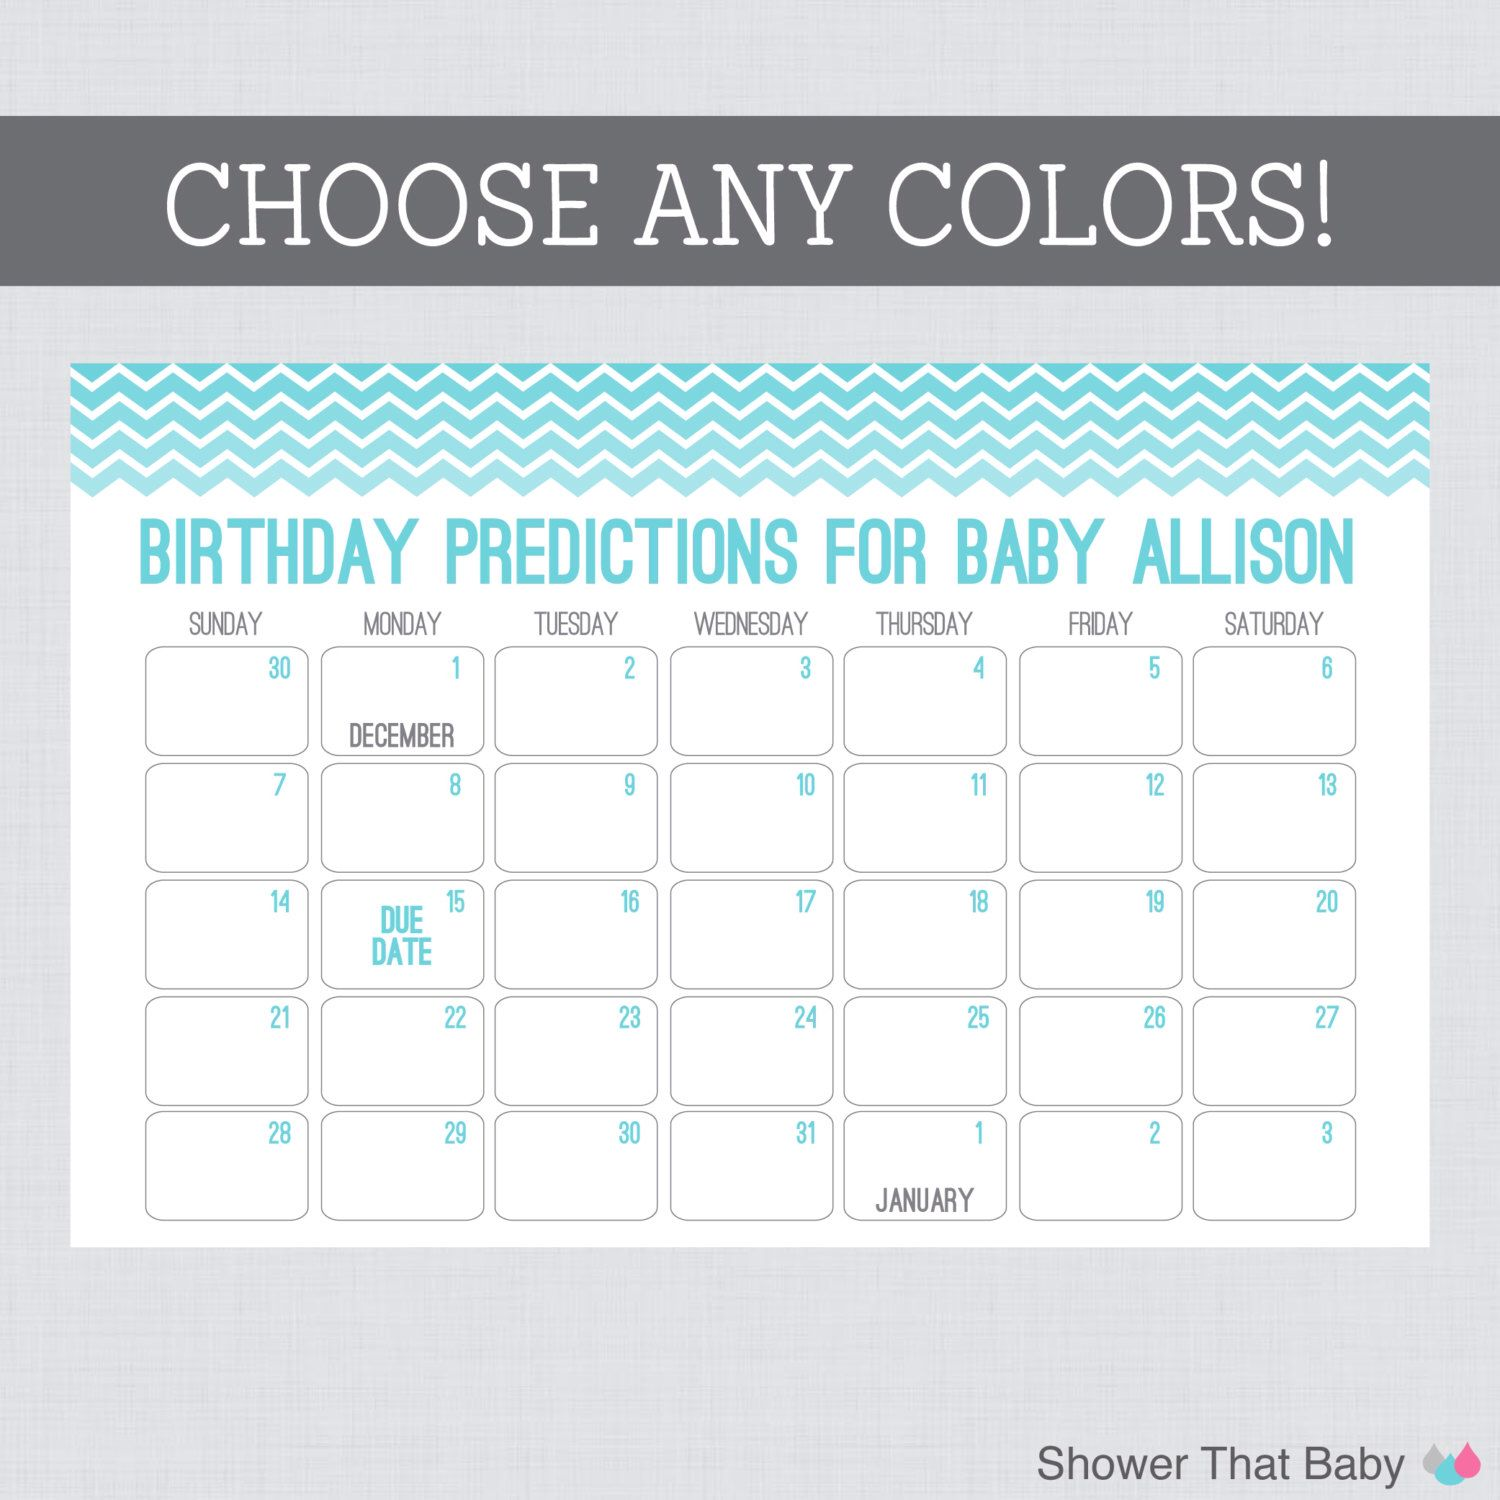 Calendar Shower Ideas : Pin by melissa biggs on baby shower ideas pinterest